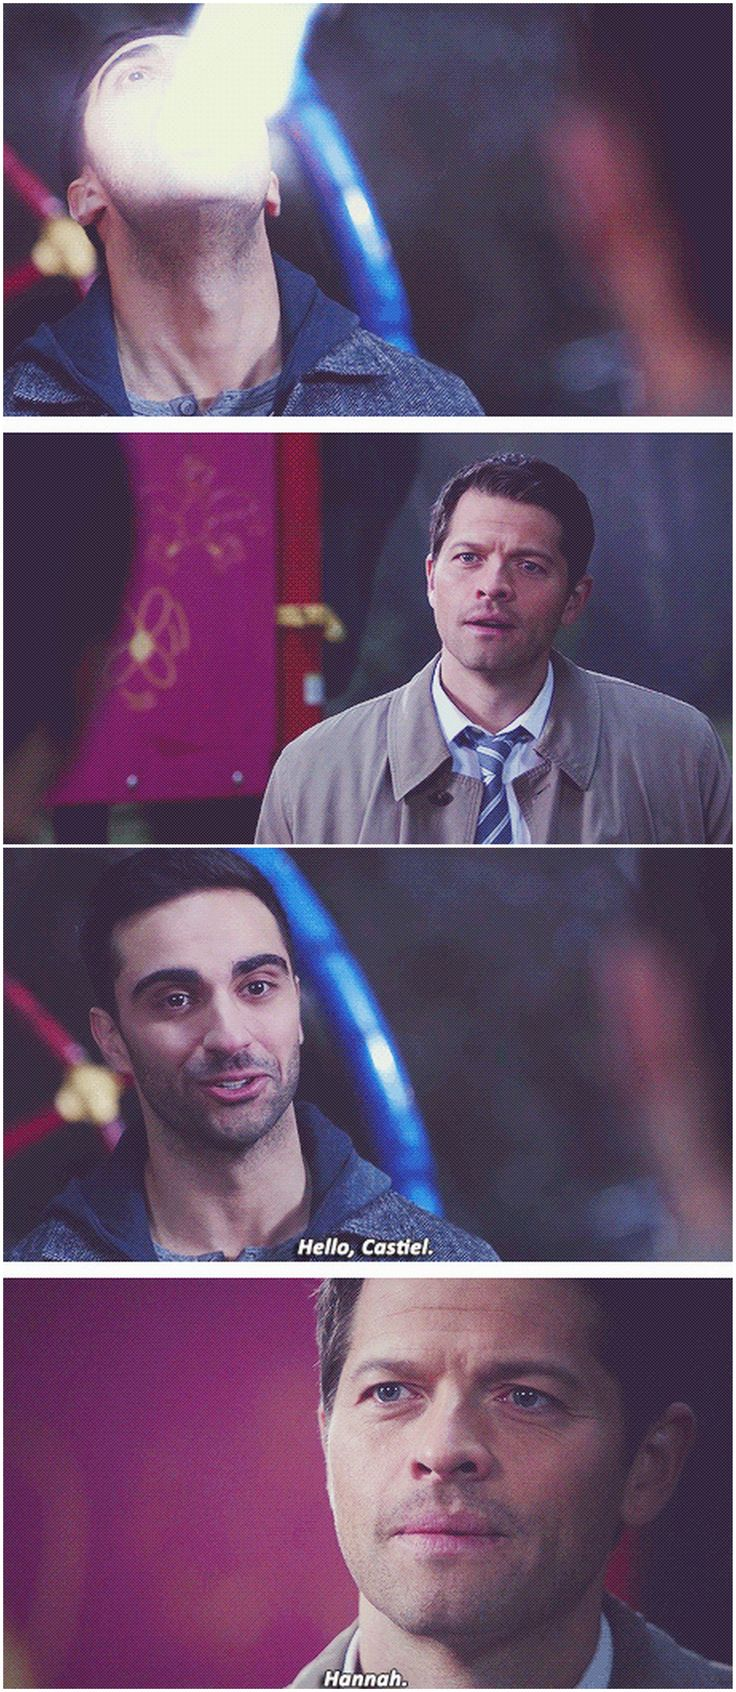 [gifset] 10x17 Inside Man #SPN #Castiel The joy on his face when he sees her was adorable.